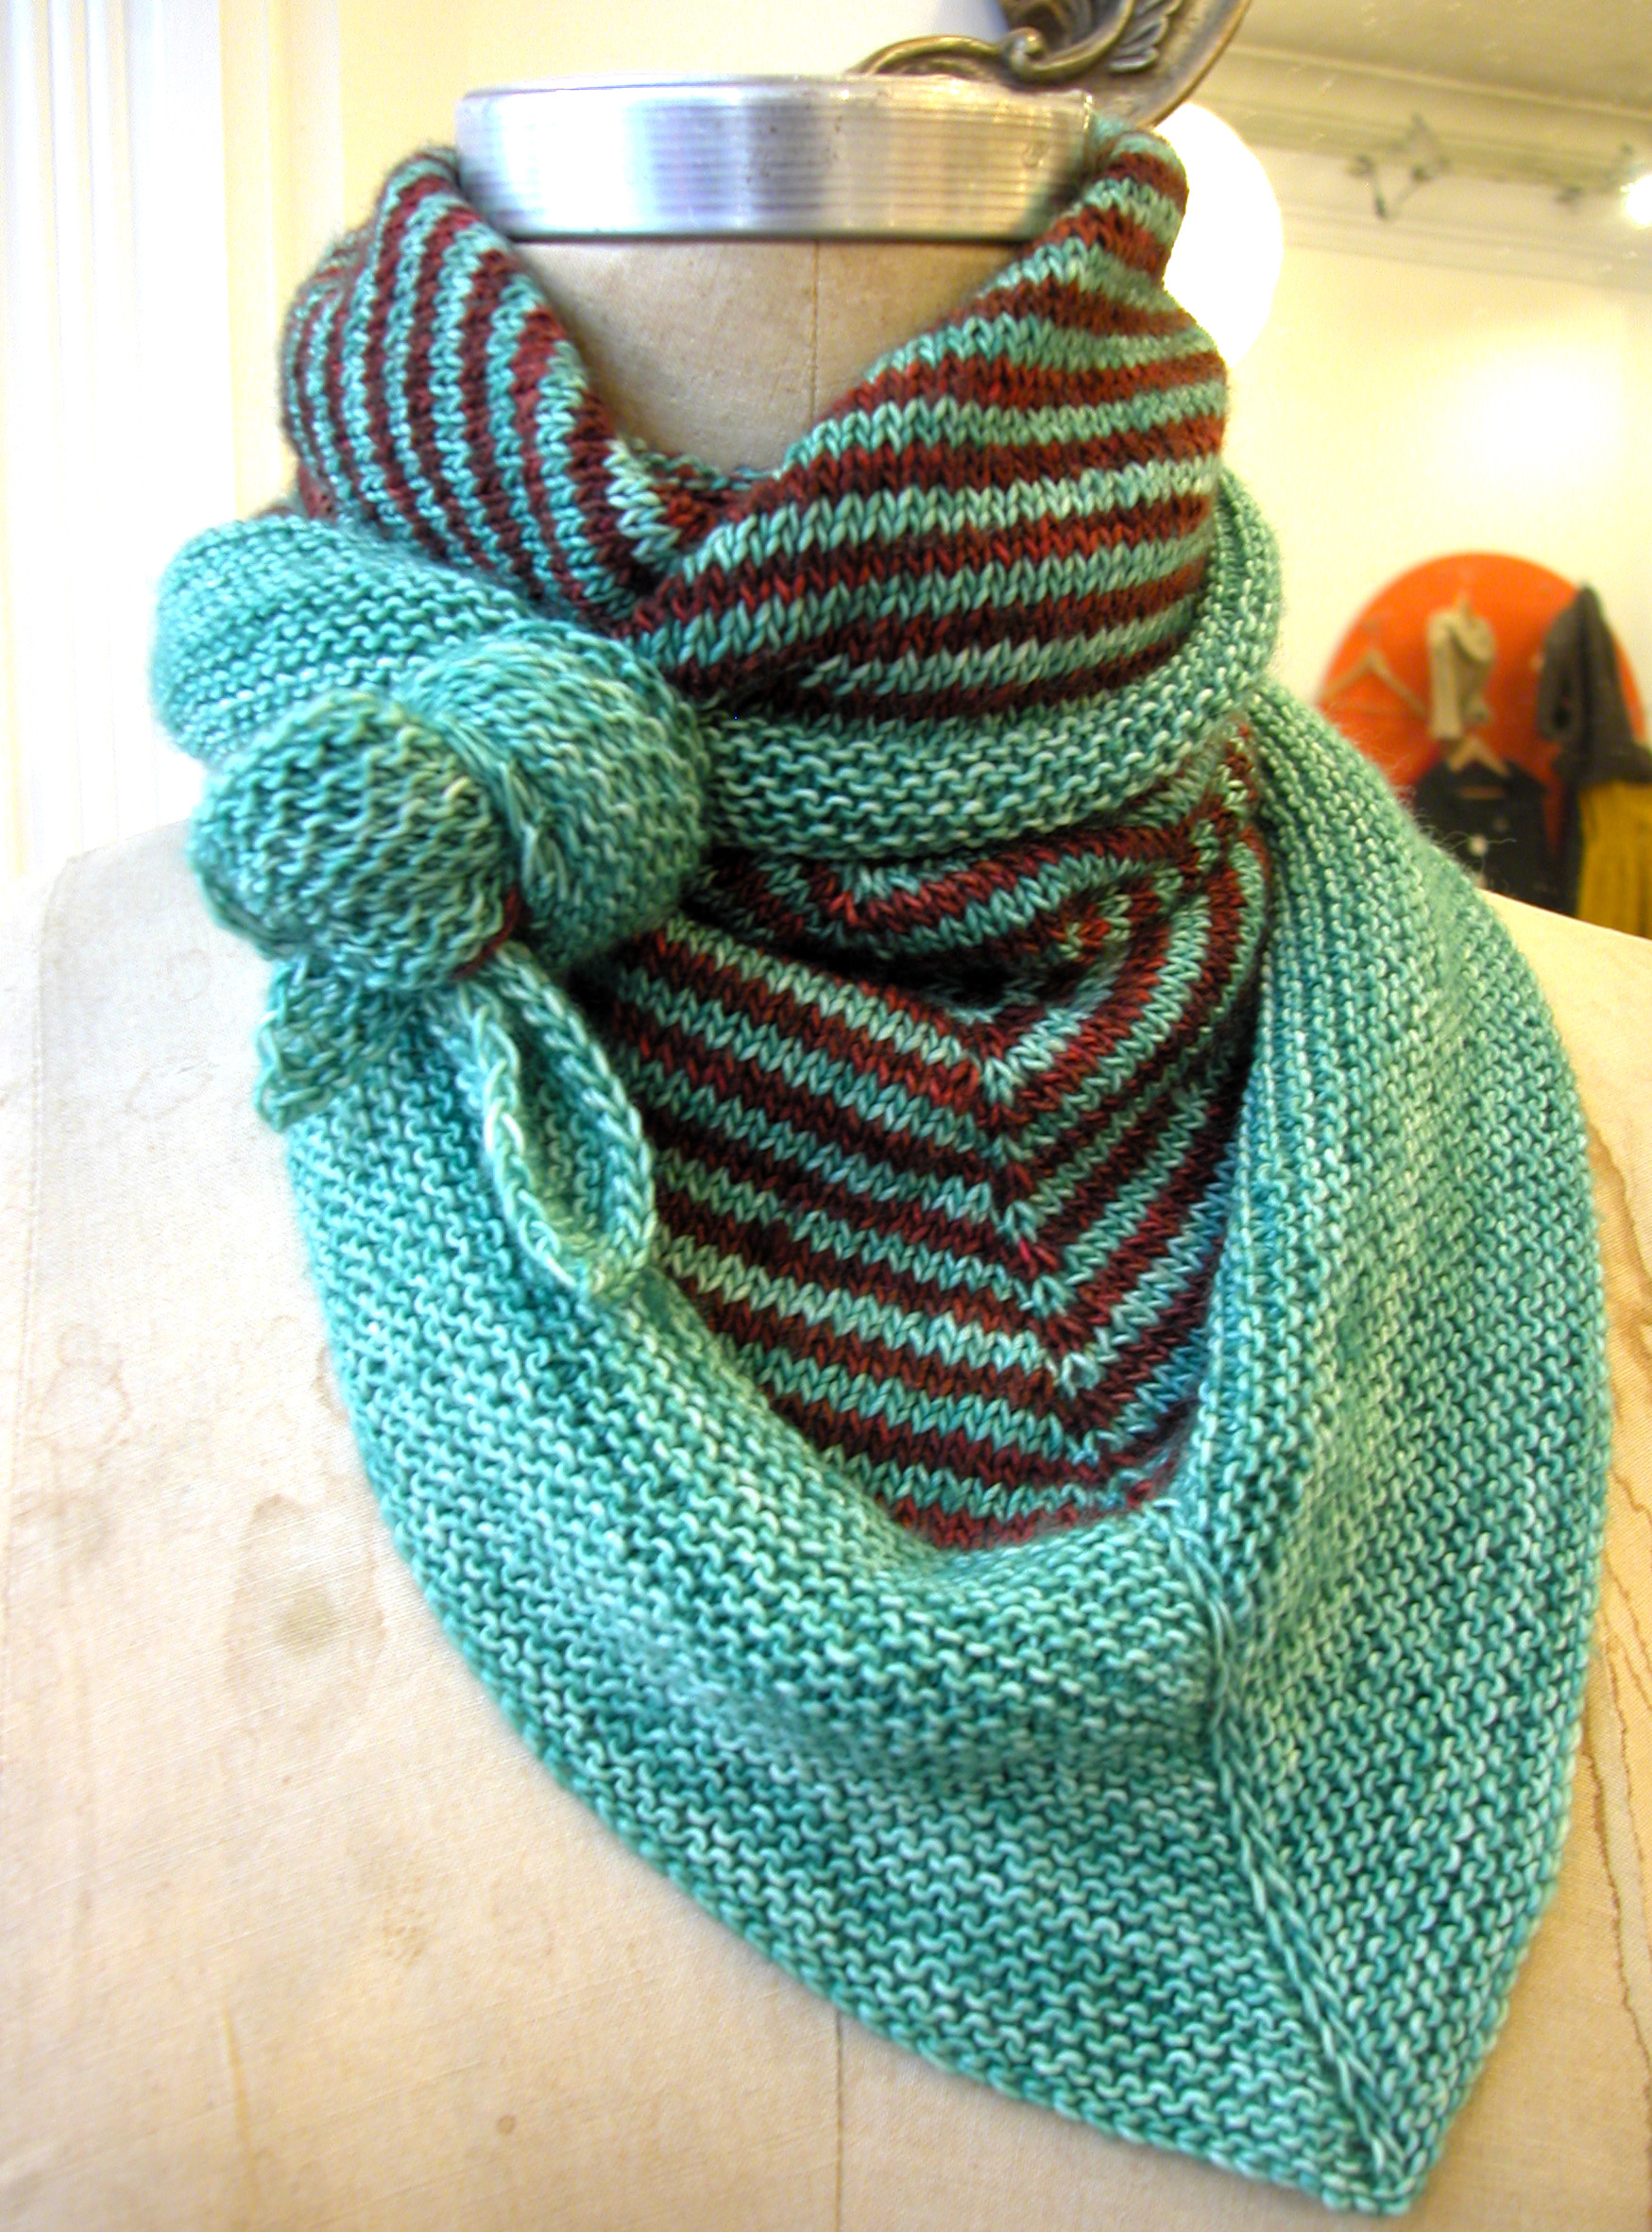 Knitting Scarf Pattern For Beginners Free Triangular Scarf The Knit Cafe